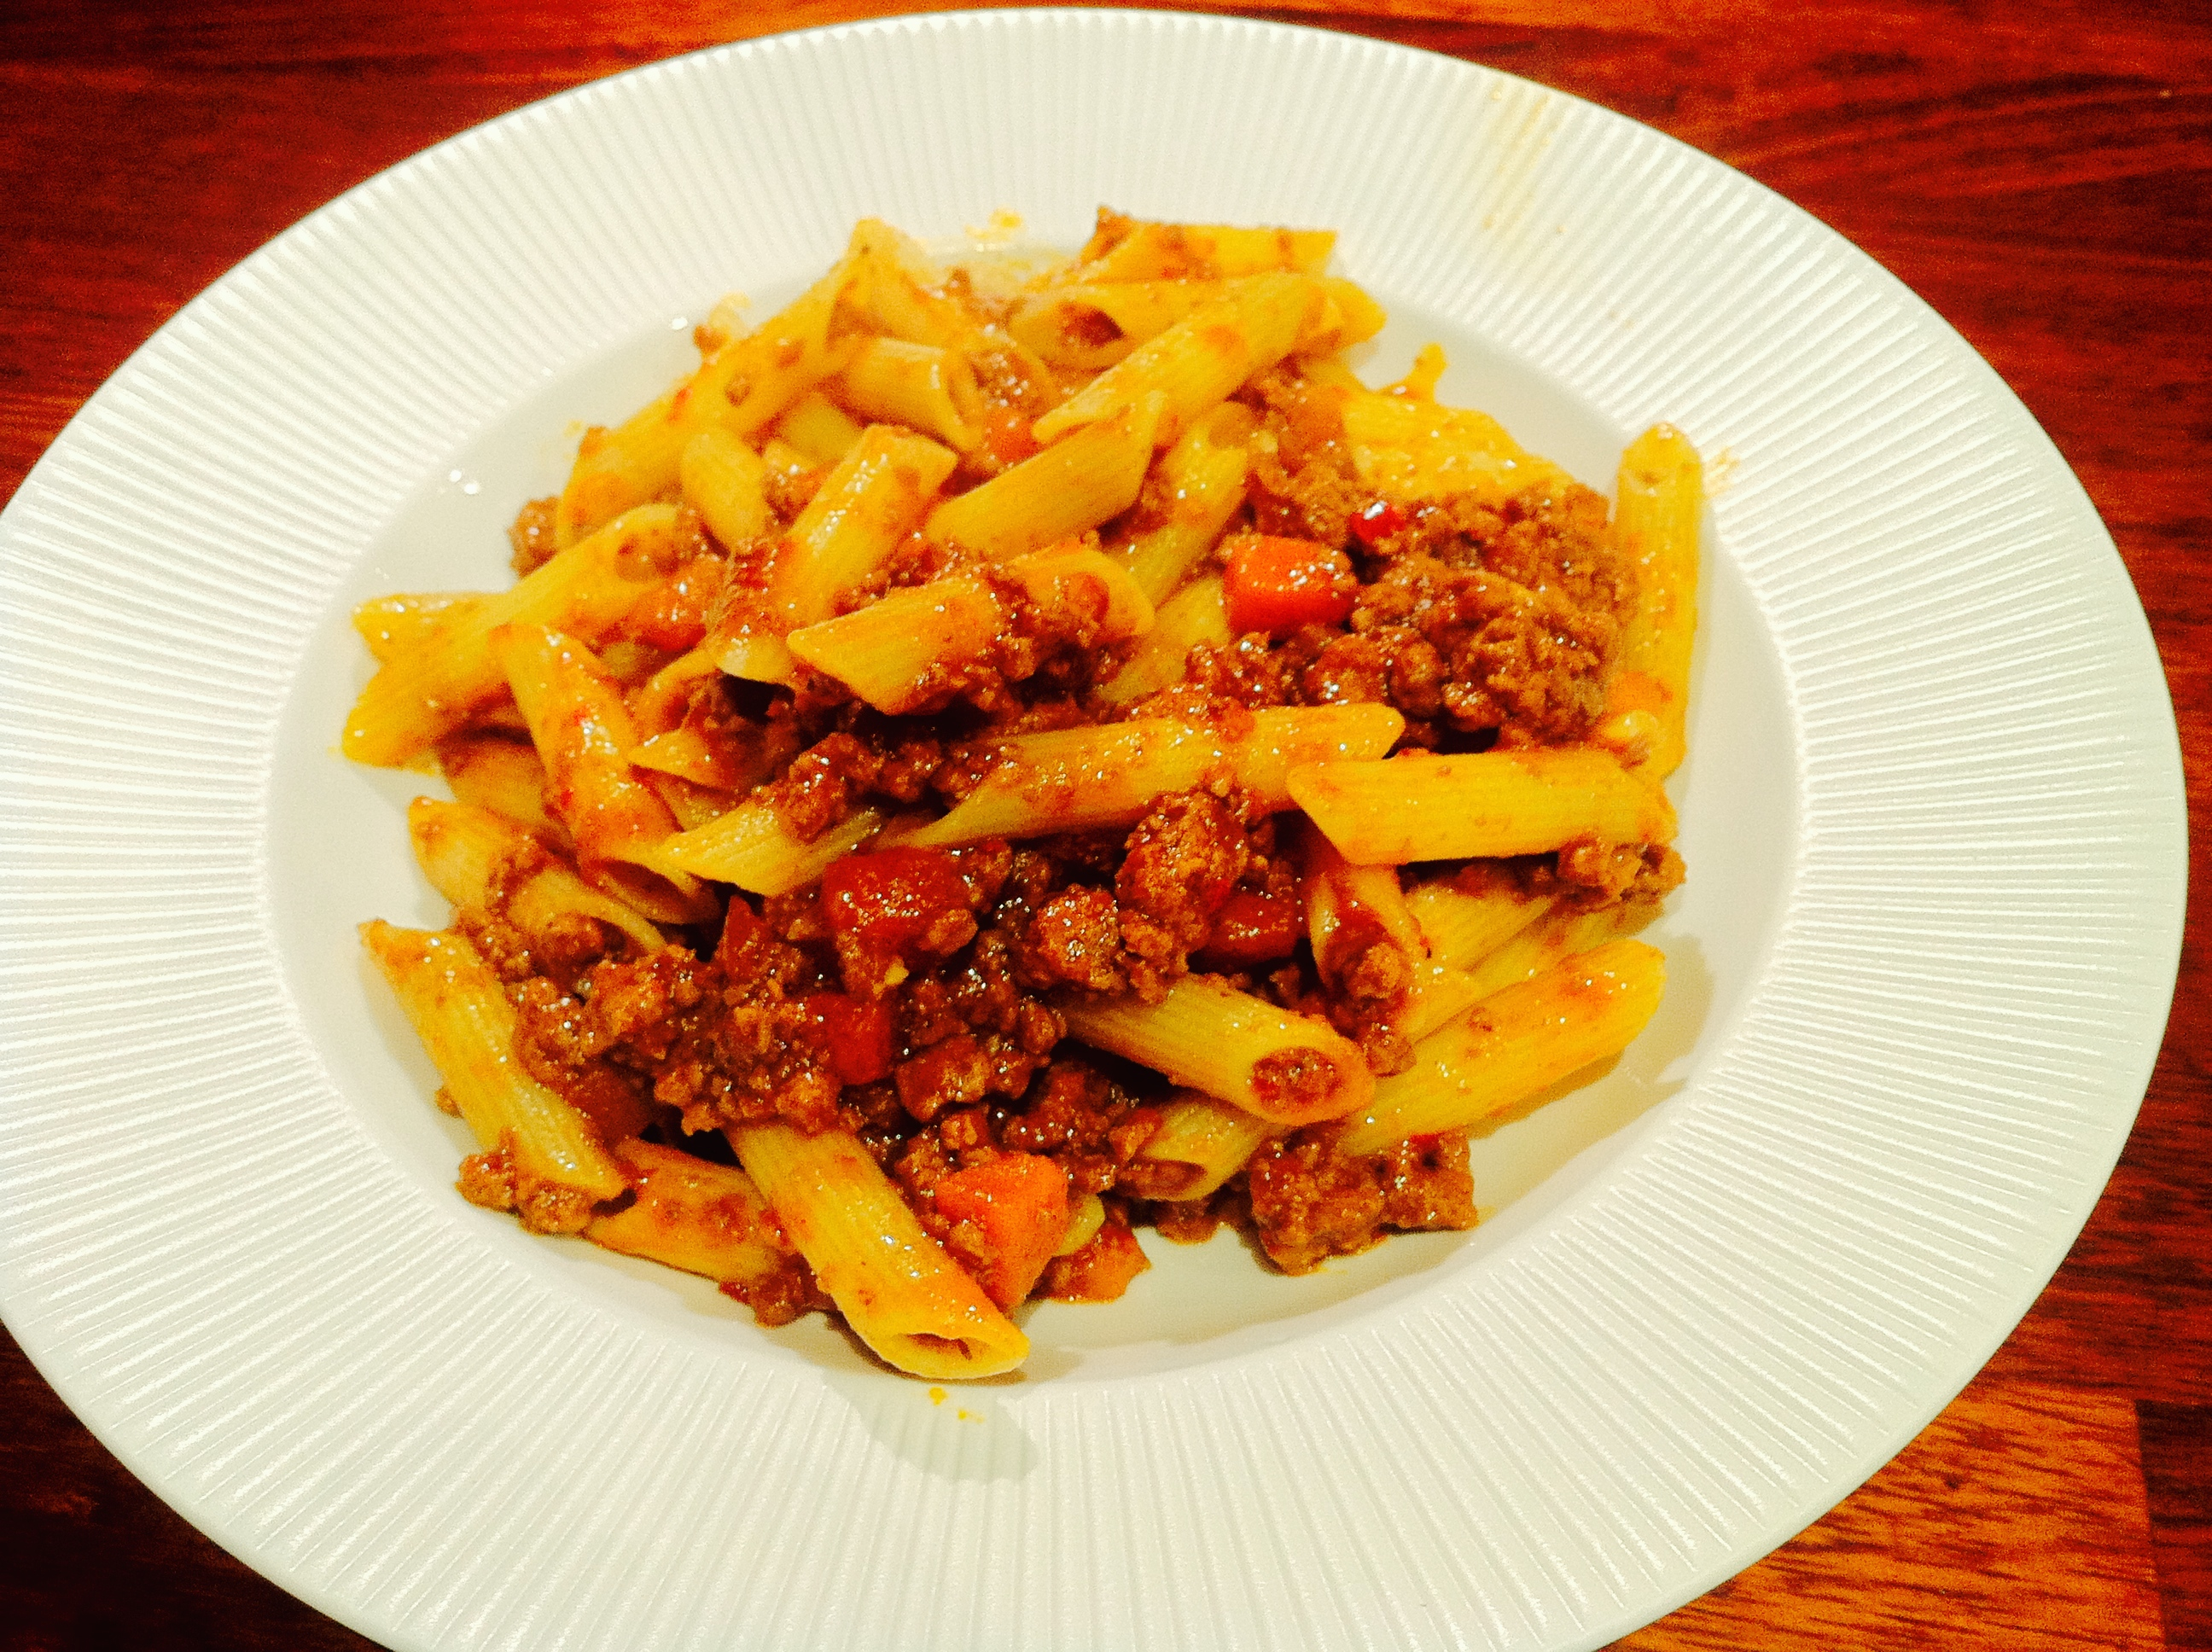 When is a bowl of pasta not a bowl of pasta? When it's gluten free!